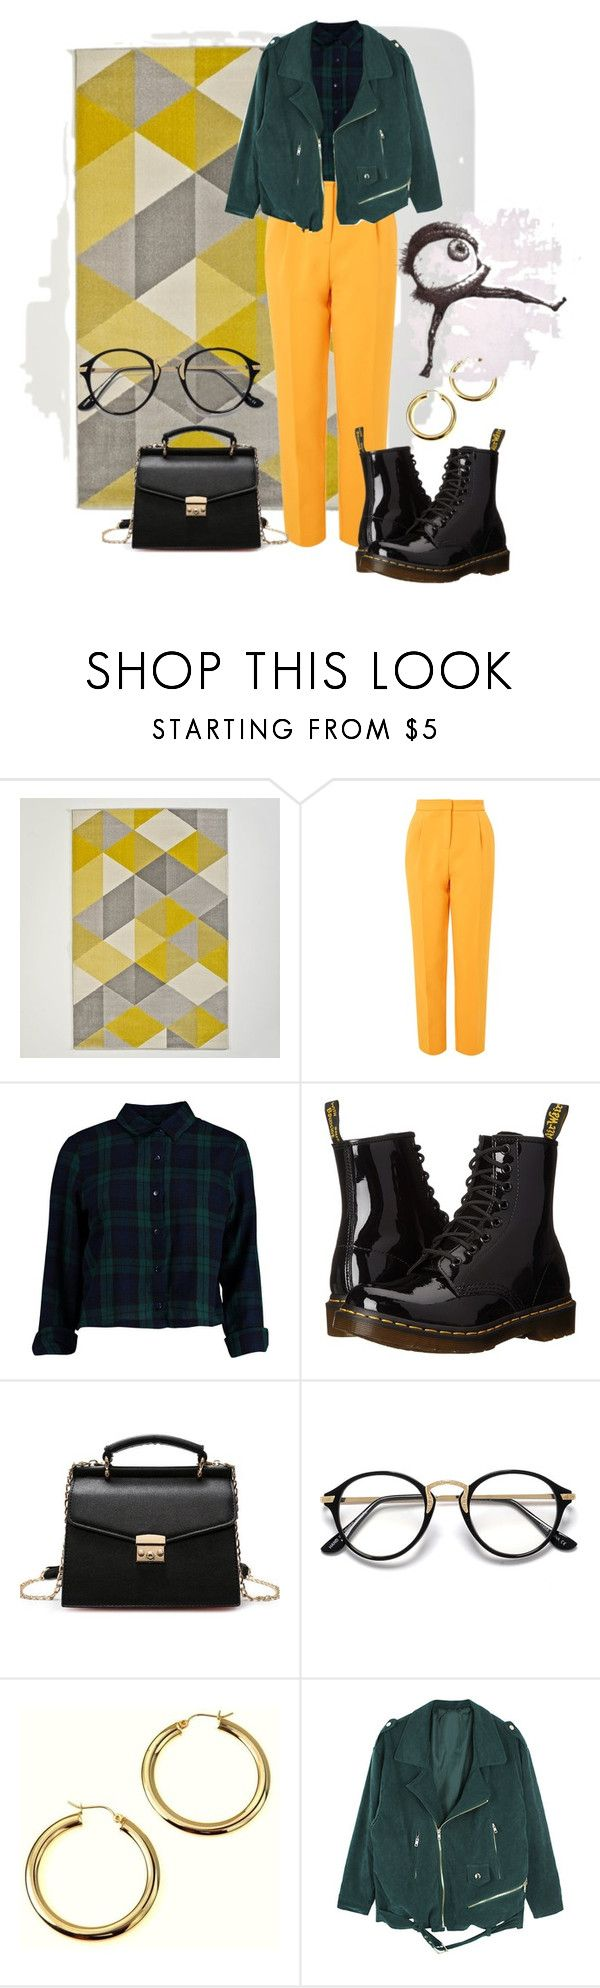 """""""bright pants"""" by nover on Polyvore featuring Topshop, Boohoo and Dr. Martens"""